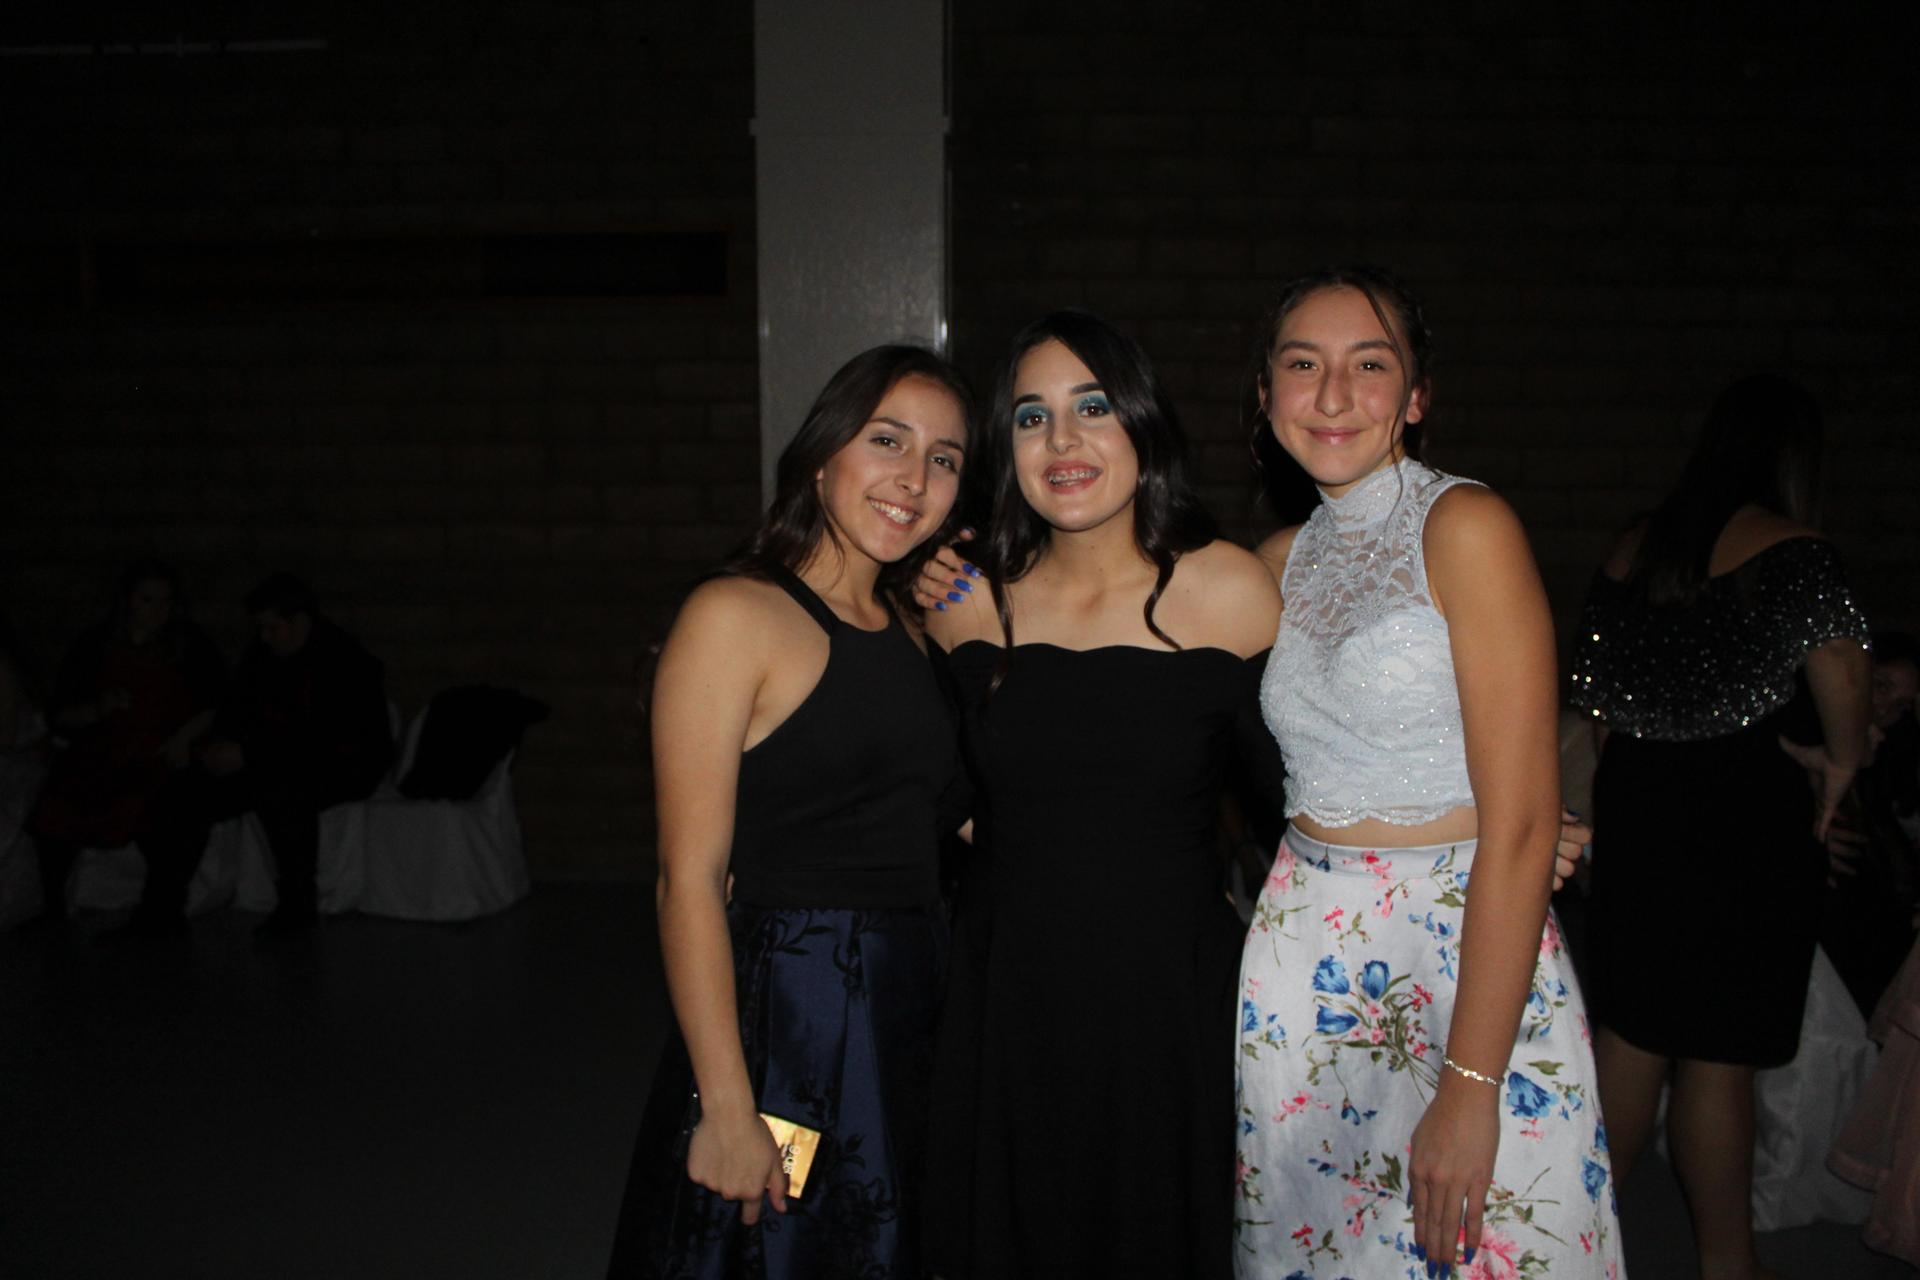 CUHS students posing at the Winter Formal.